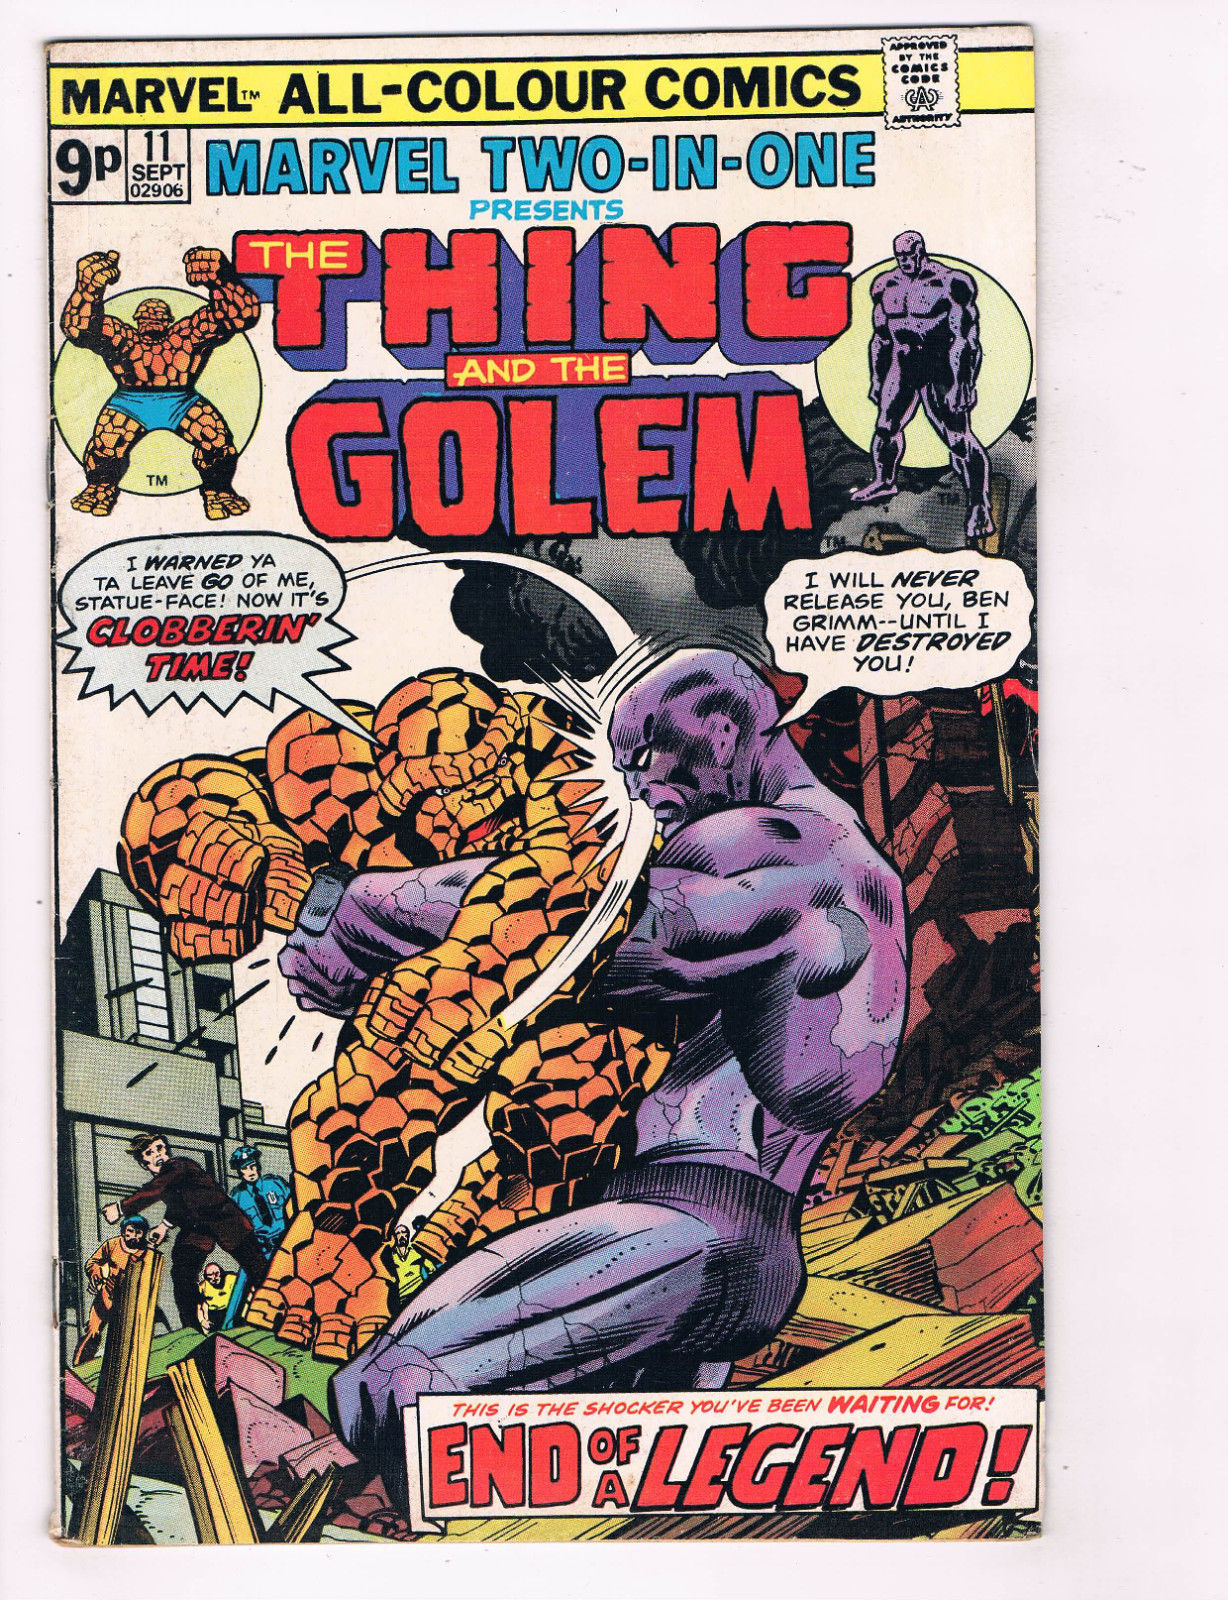 Marvel 2 In 1 The Thing /& The Golem #11 FN Marvel Comics Comic Book 1975 DE29